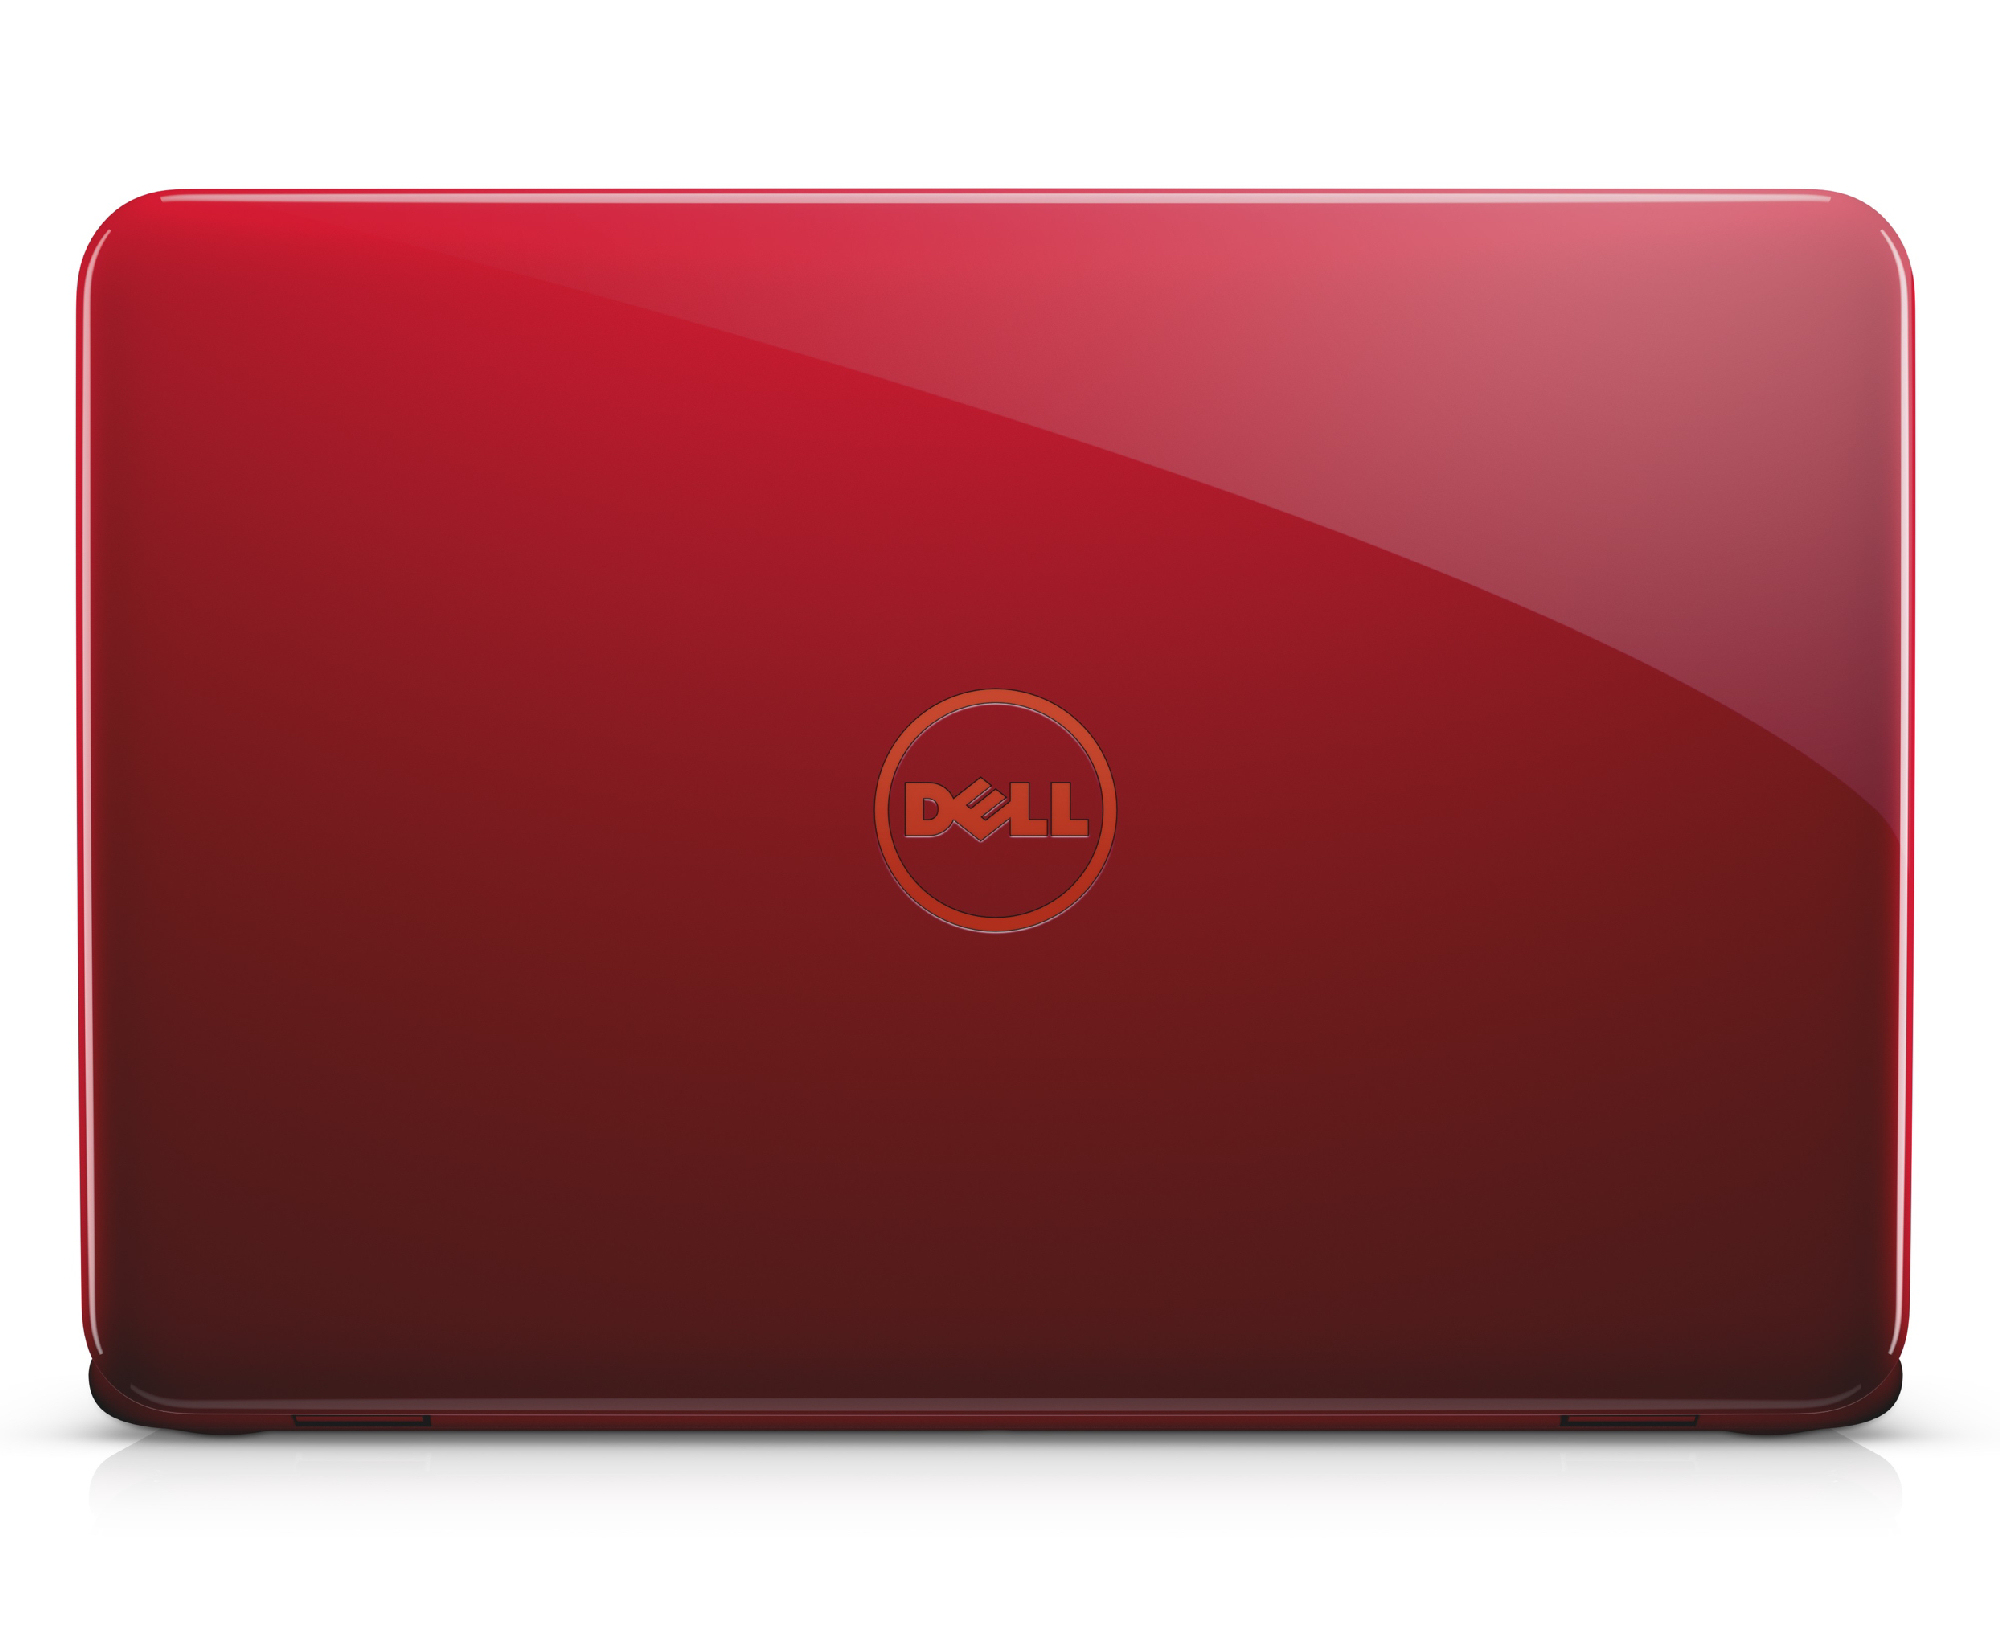 Dell Inspiron 11 3162 Subnotebook Review